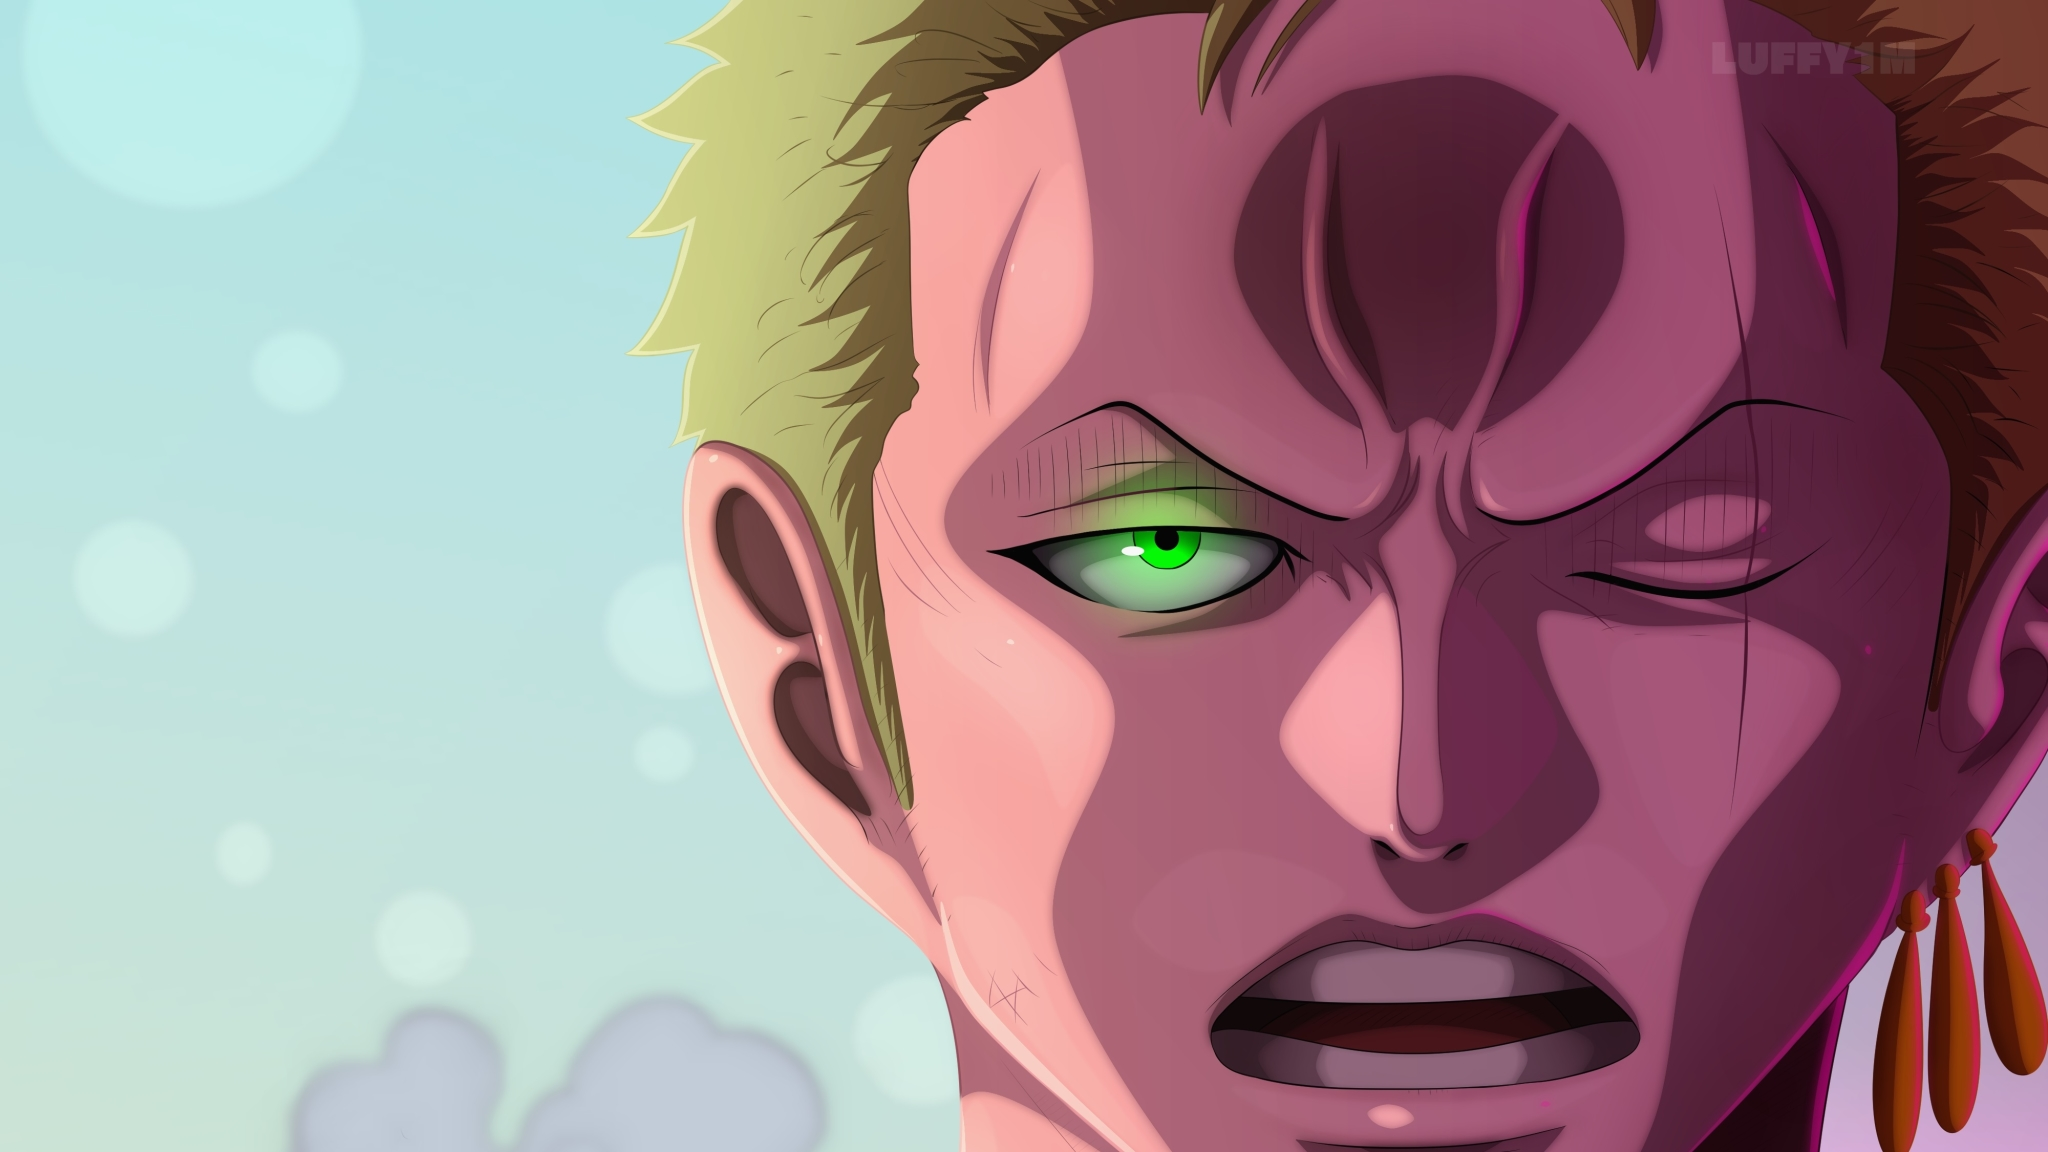 2048x1152 Roronoa Zoro Anime 2048x1152 Resolution Wallpaper Hd Anime 4k Wallpapers Images Photos And Background